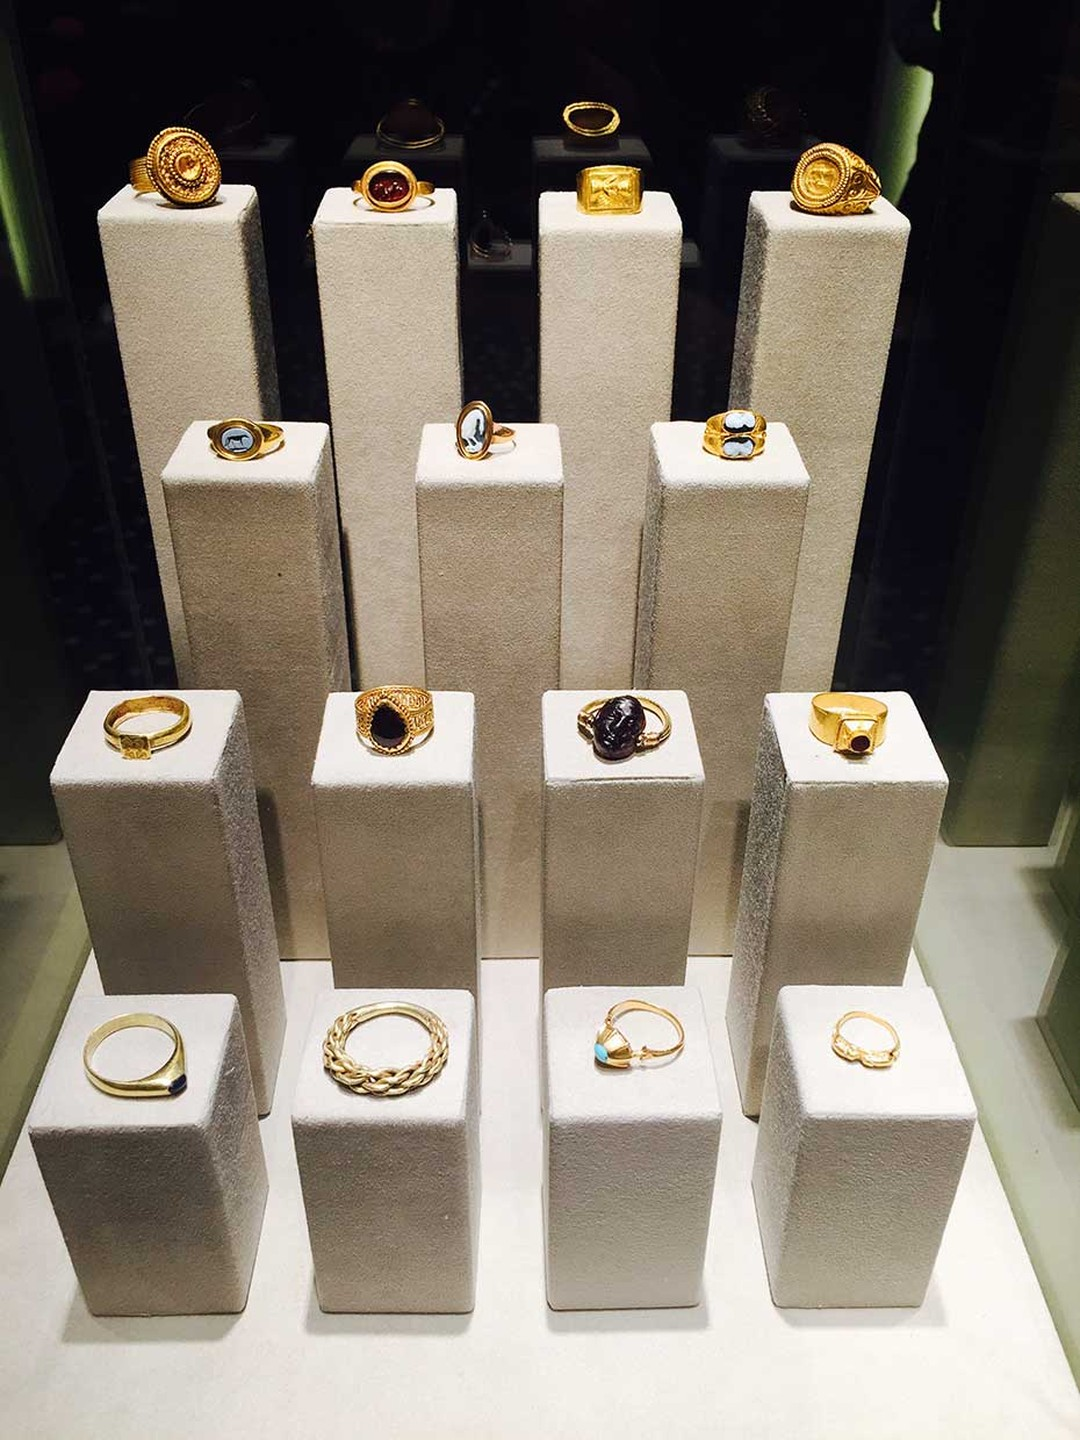 At Les Enluminures, specialists in early manuscripts, rings range in date from Ancient Rome to the 19th century, with prices from $5,000 to $50,000.